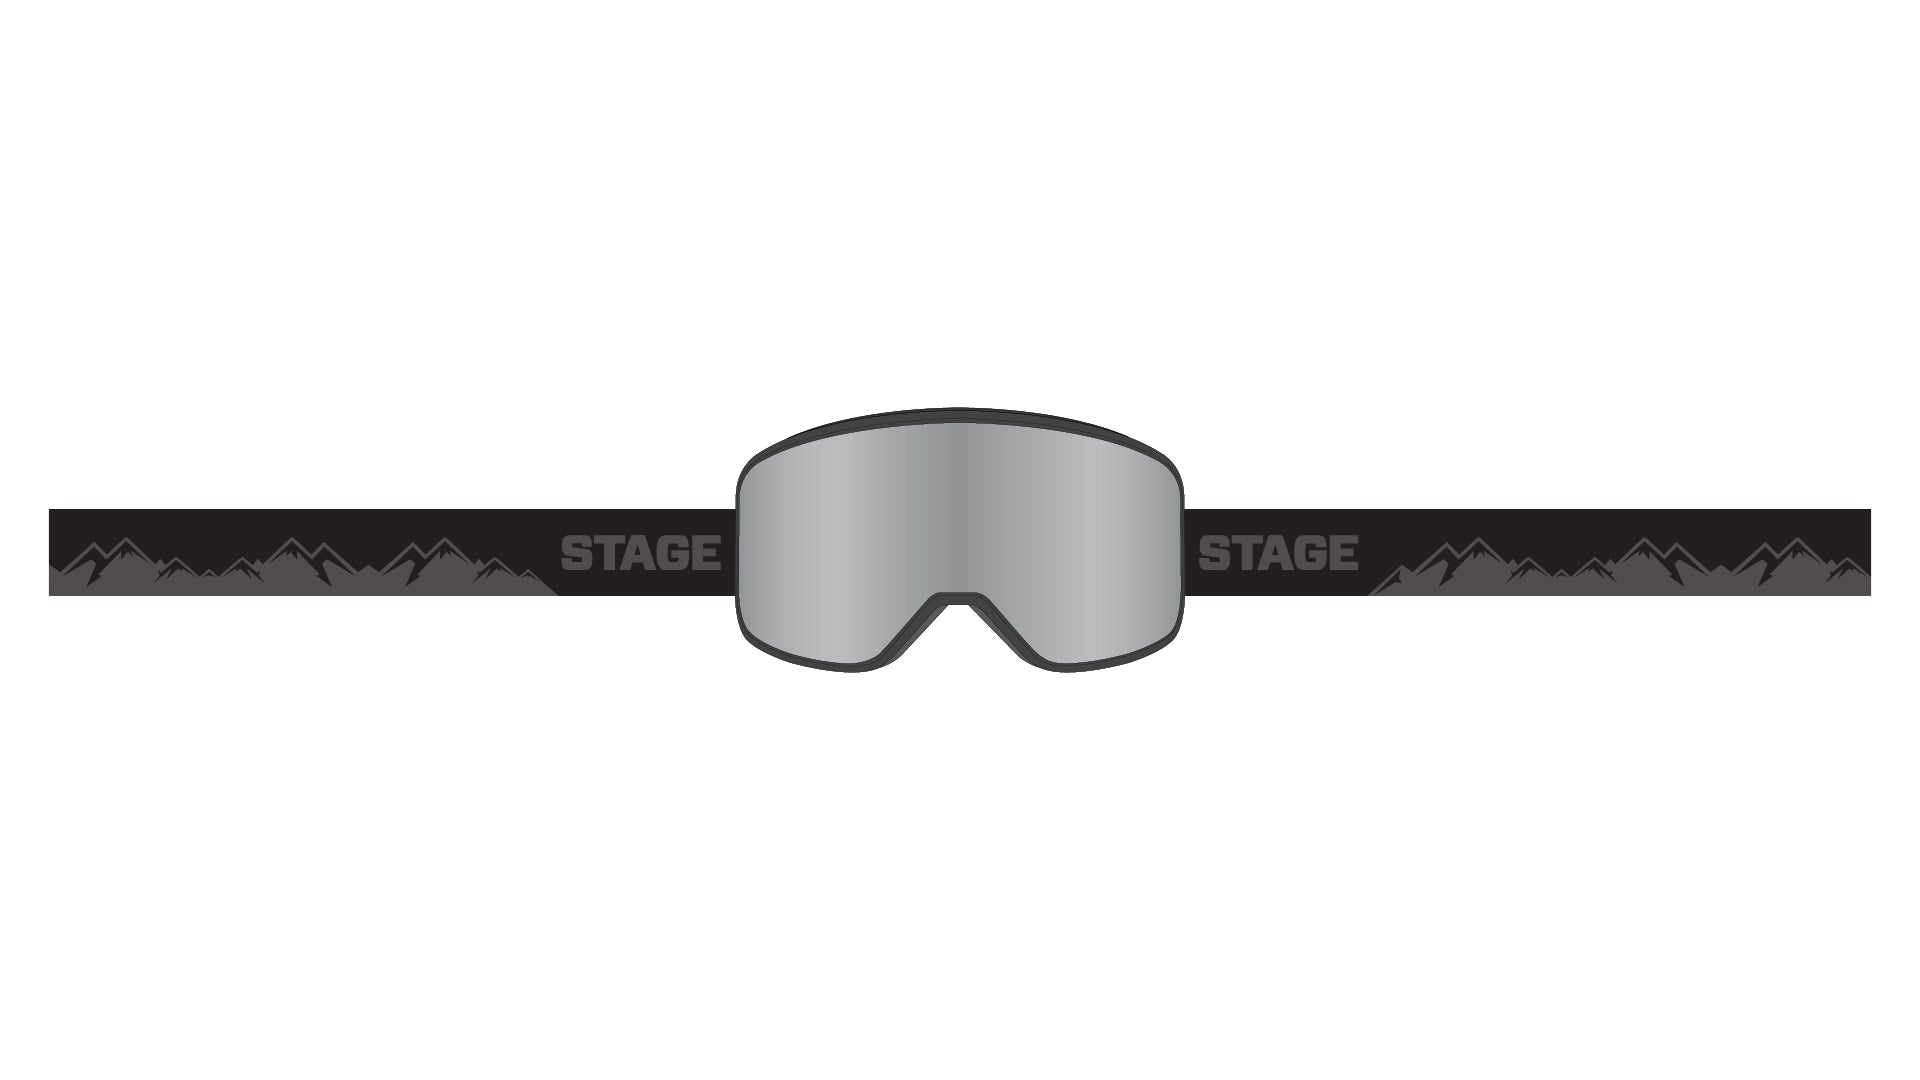 STAGE Prop Goggle - Black Frame / Mirror Chrome Lens